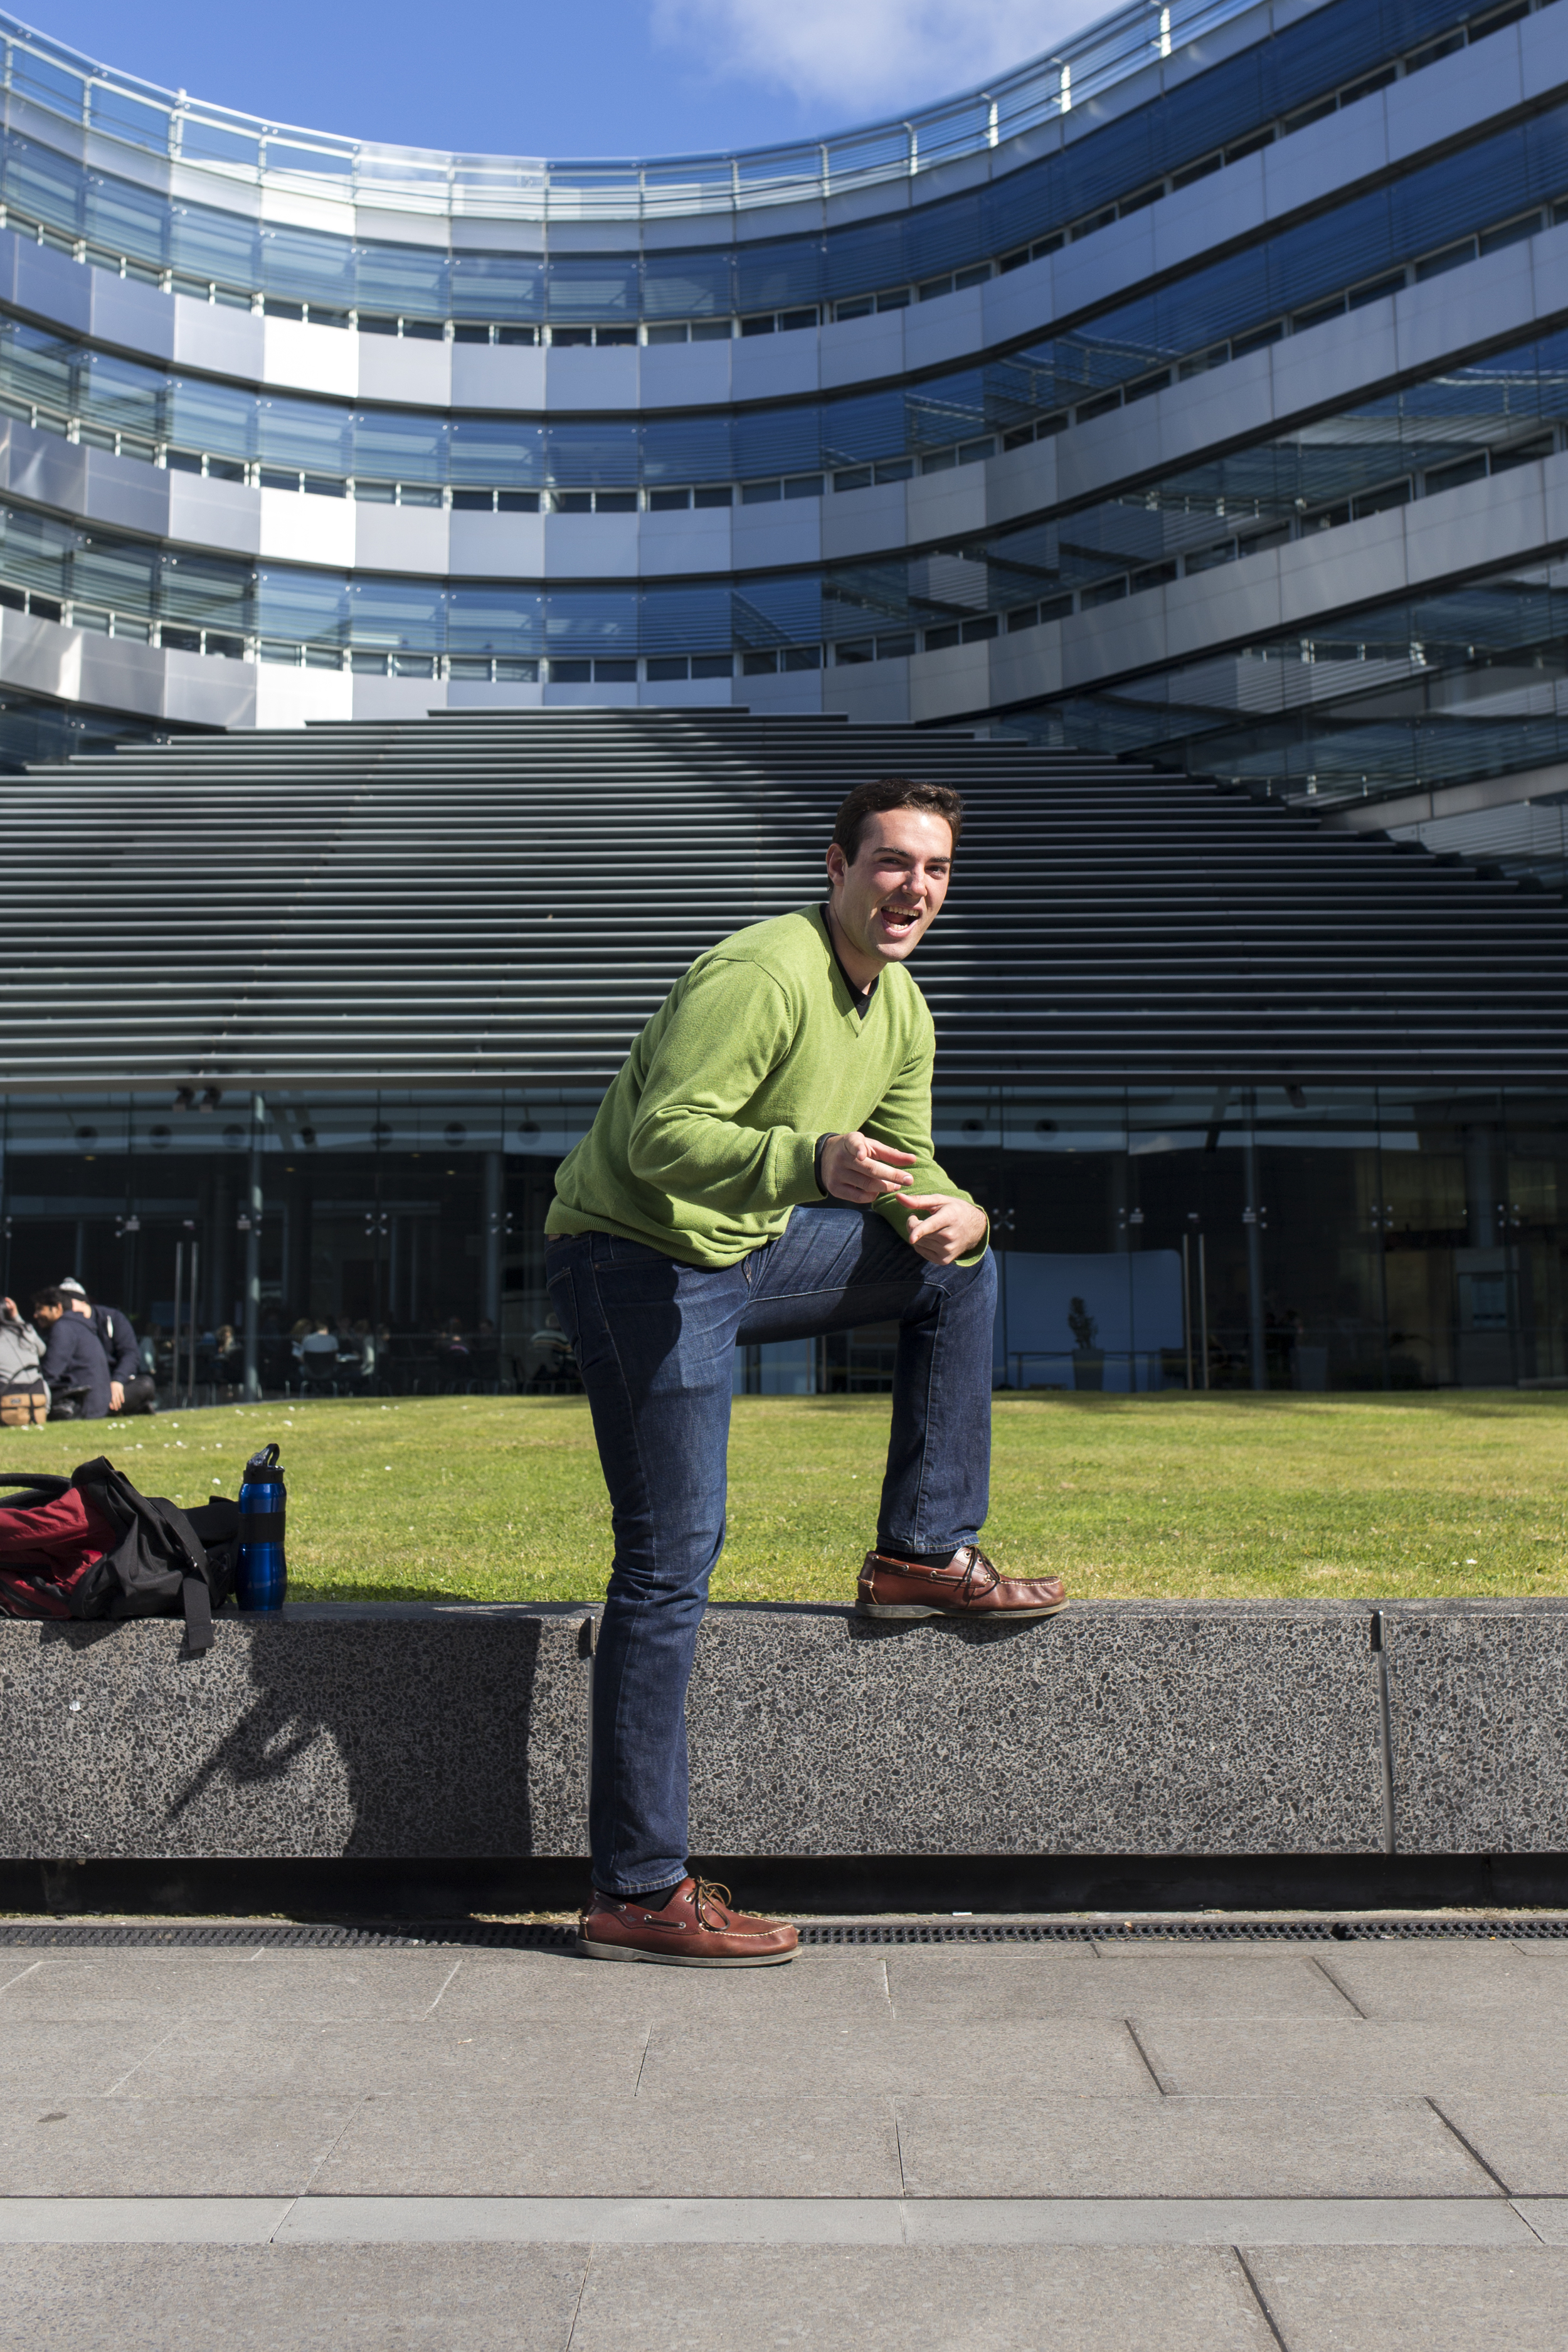 The building behind Ryan was our business school building, a very new building that took a lot of money to build...